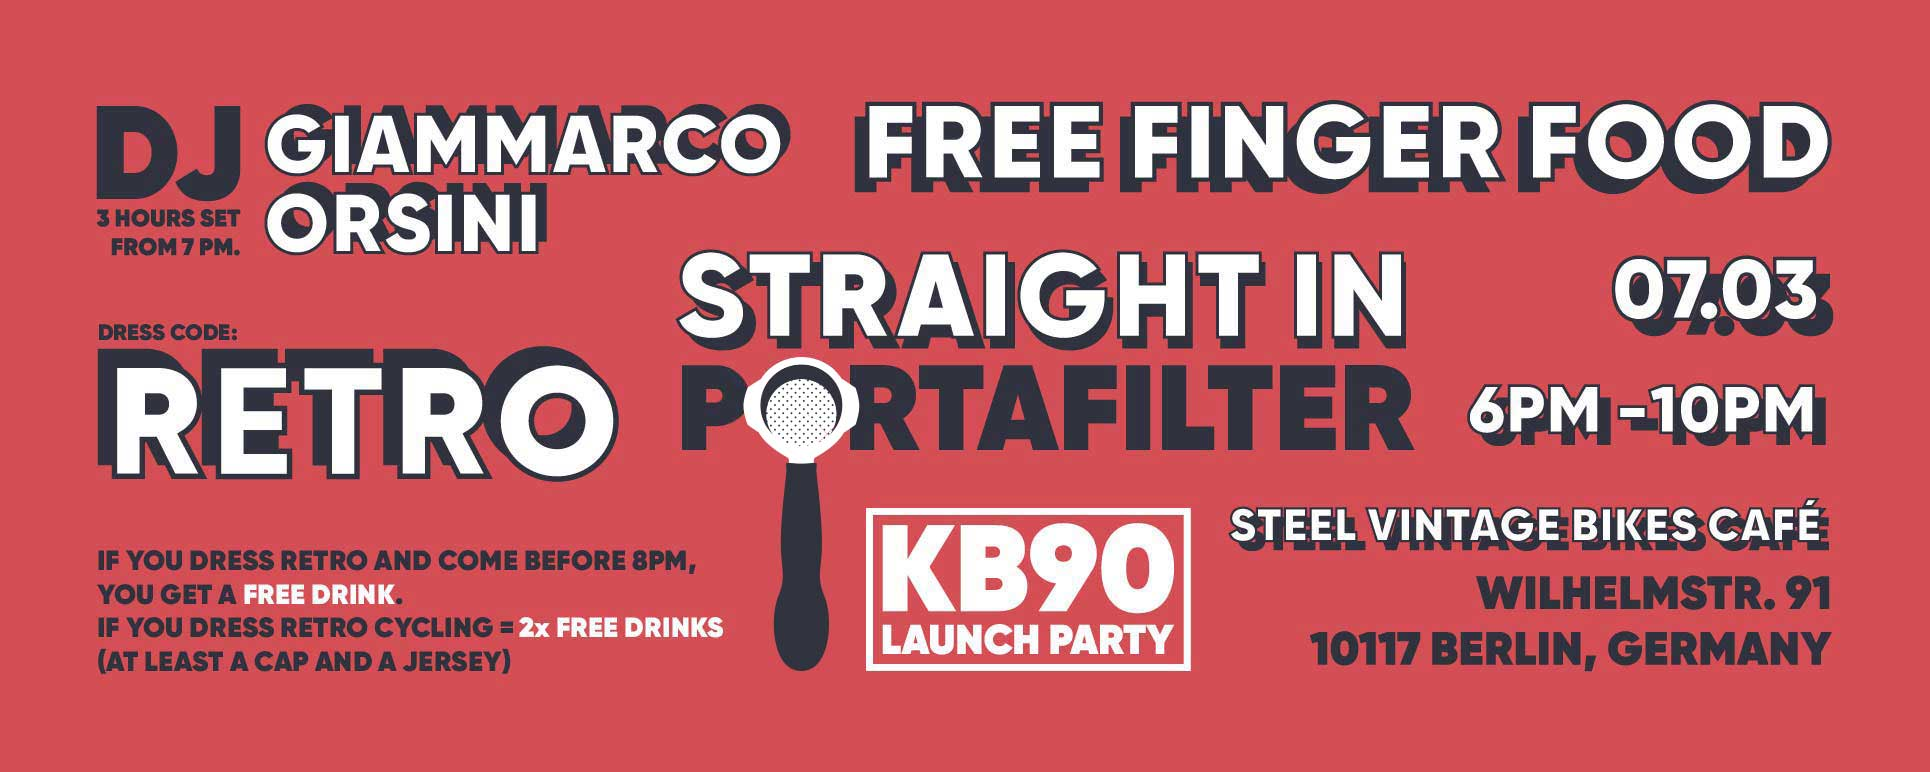 La Marcozzo KB90 Launch Party on 7th March 2019